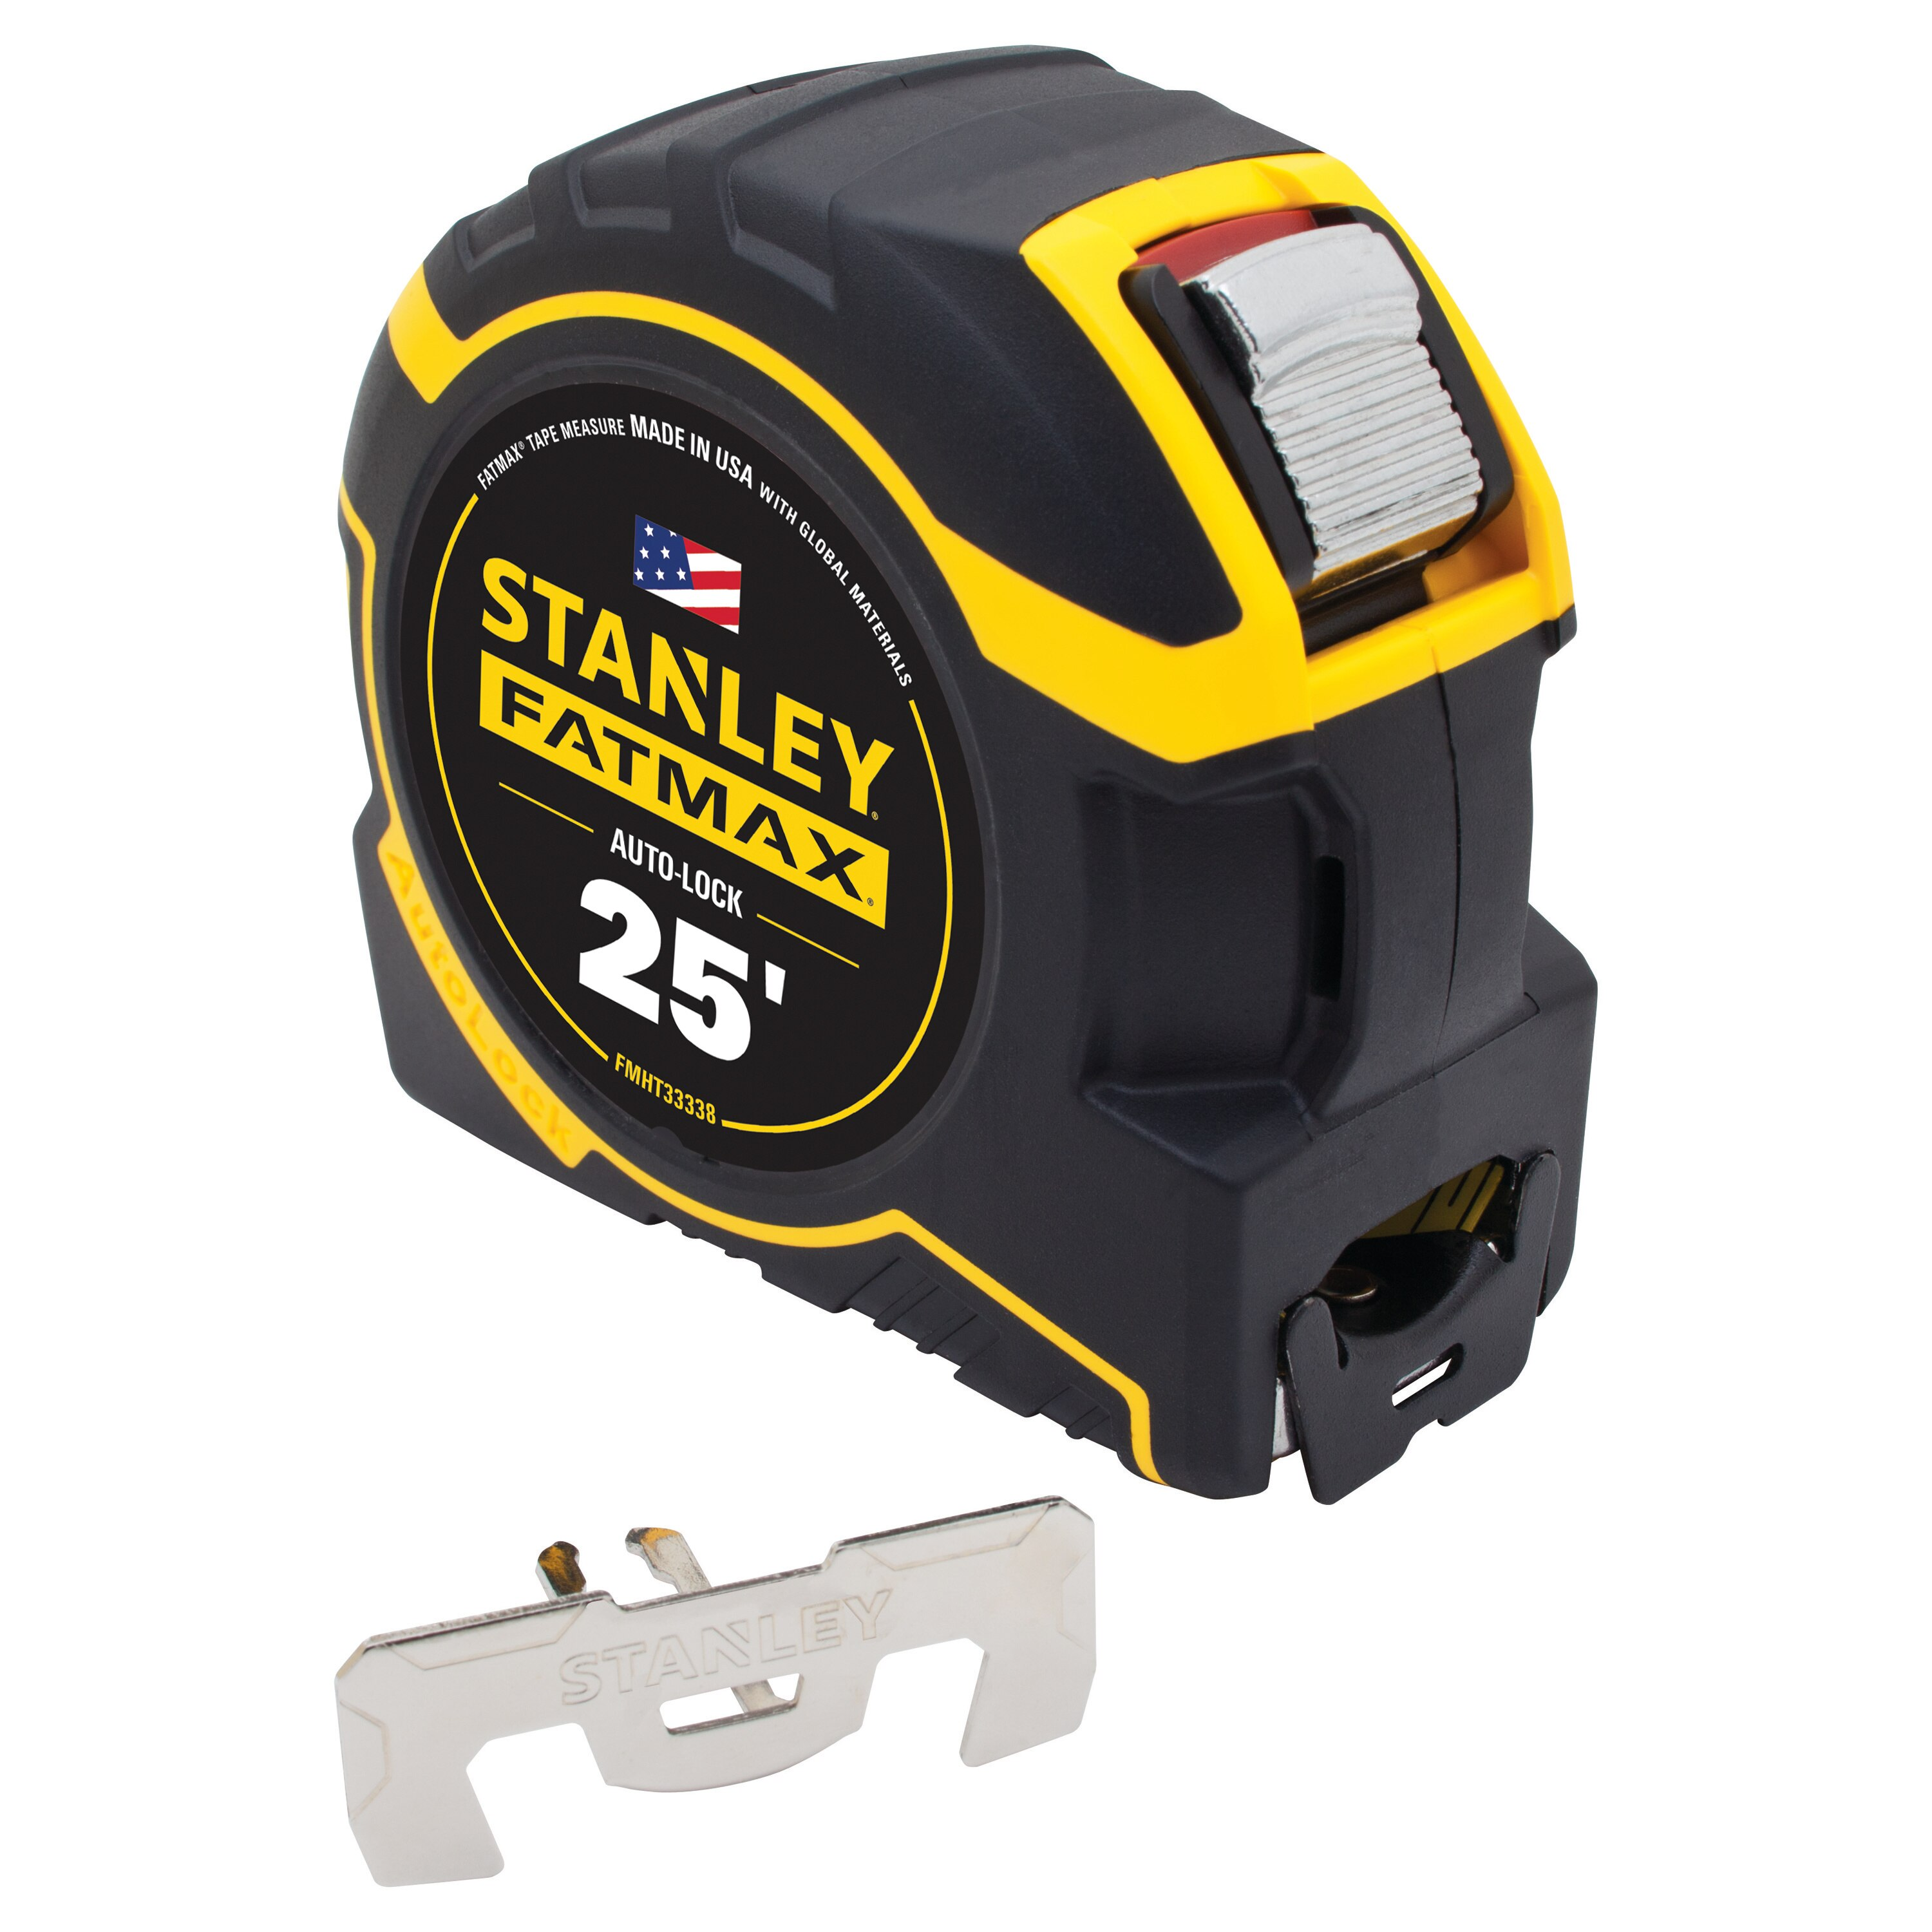 Stanley Tools - 25 ft FATMAX AutoLock Tape Measure - FMHT33338